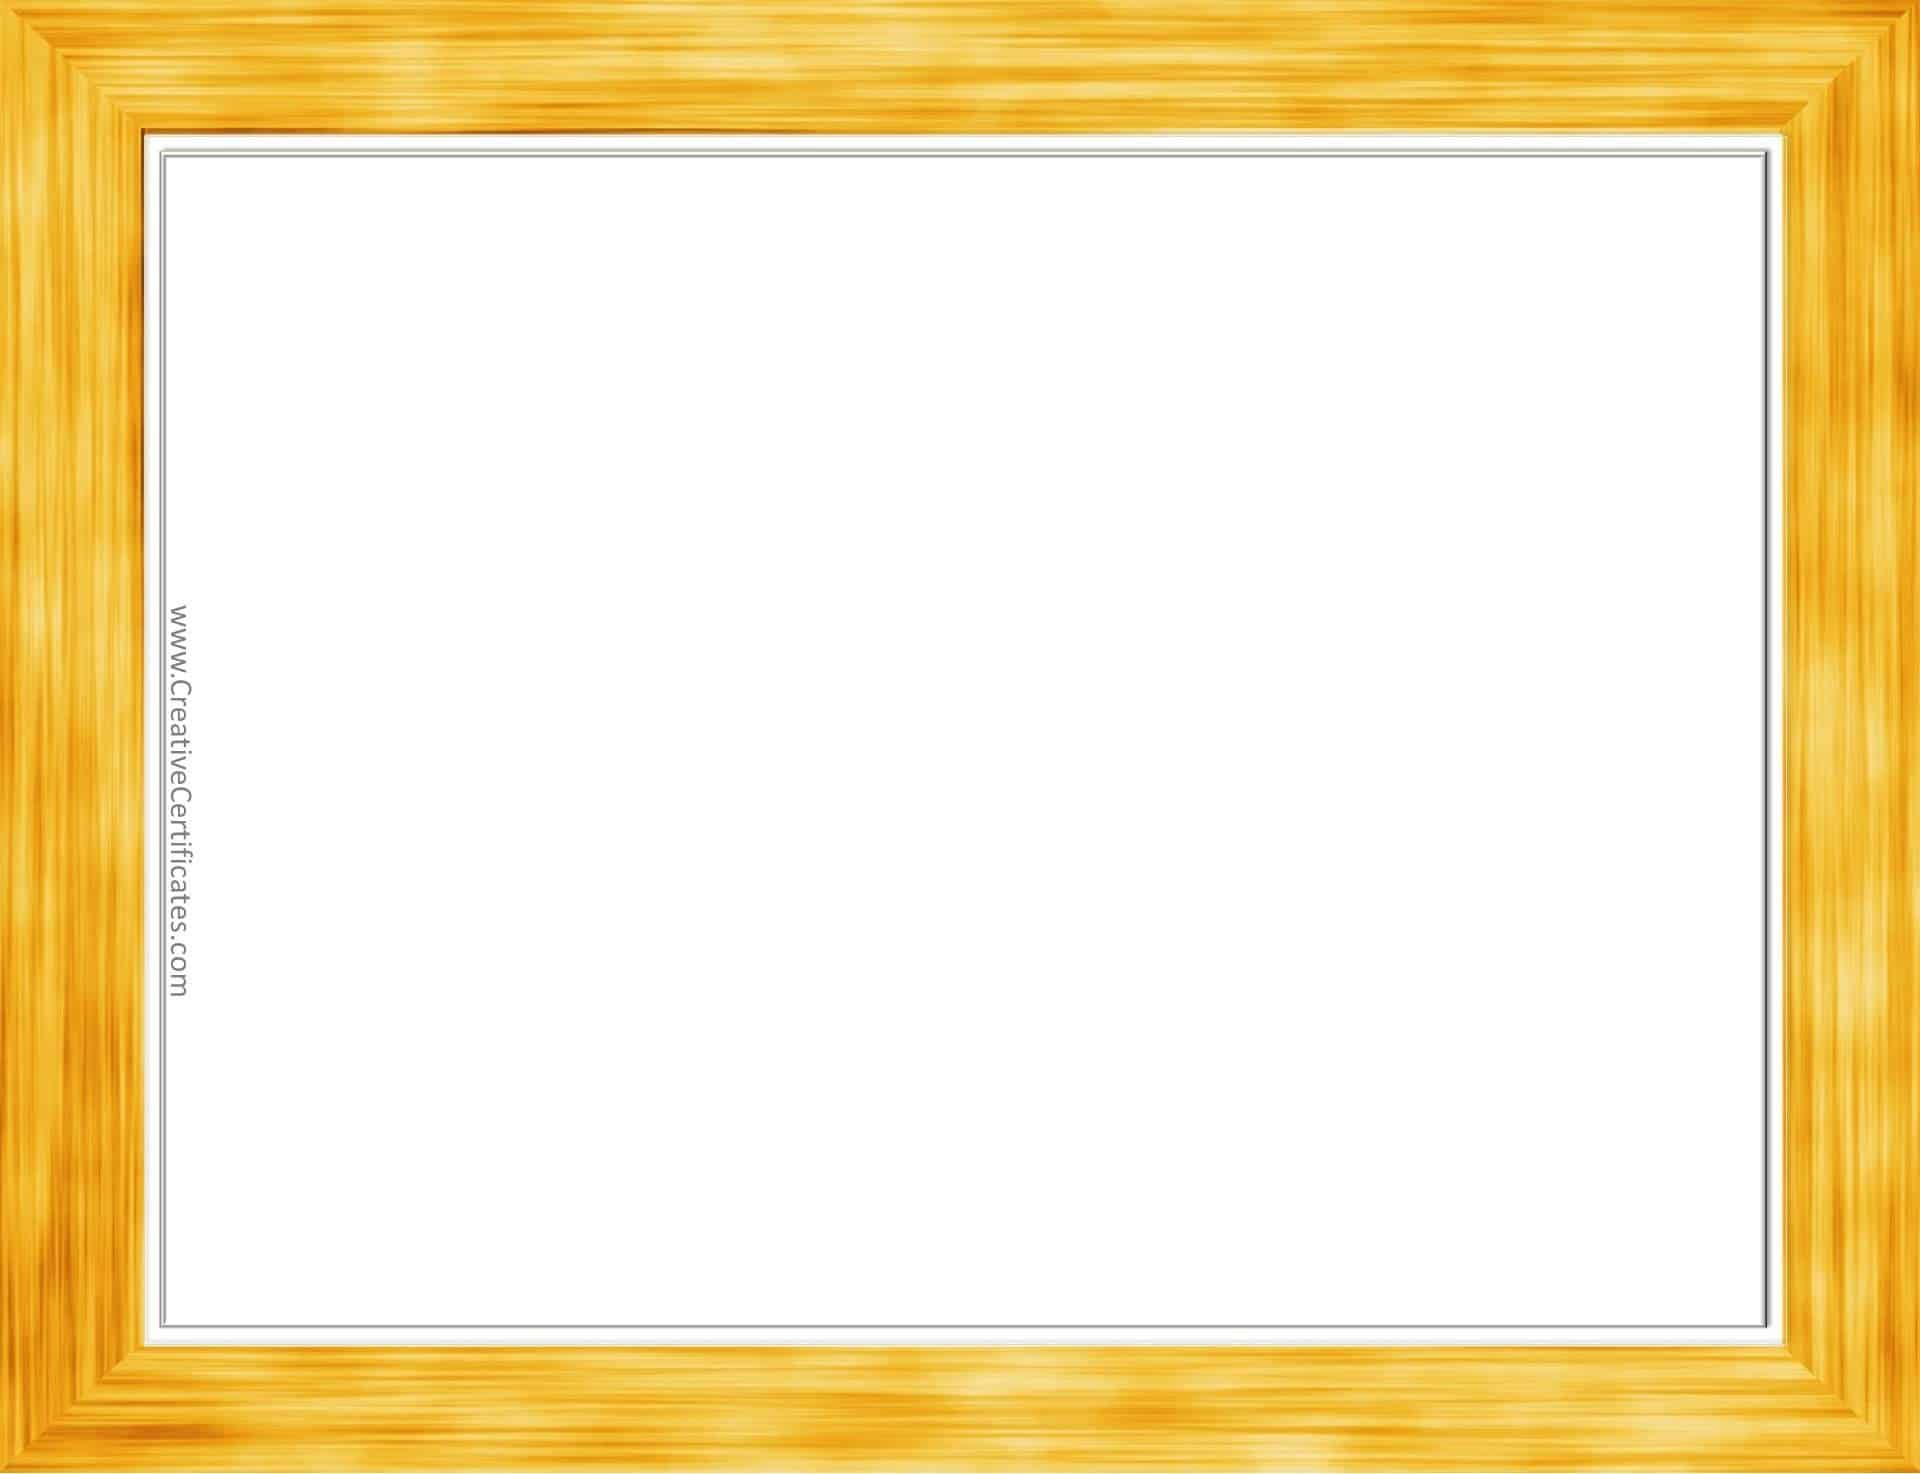 Gold Border Templates | Free Instant Printable Download